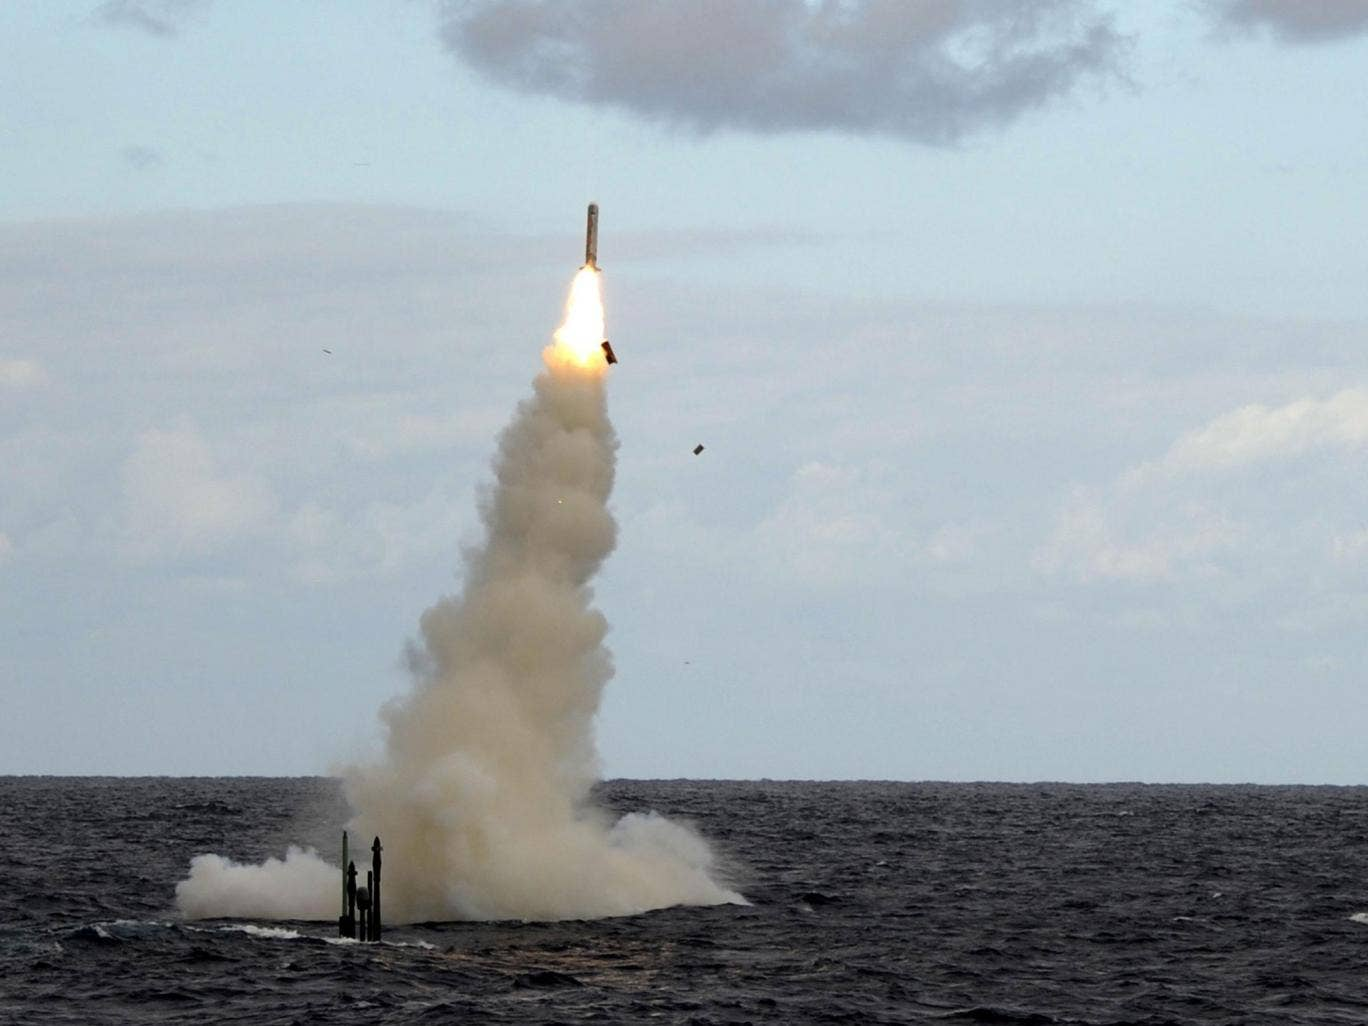 A Royal Navy submarine test fires a Tomahawk missile in 2011